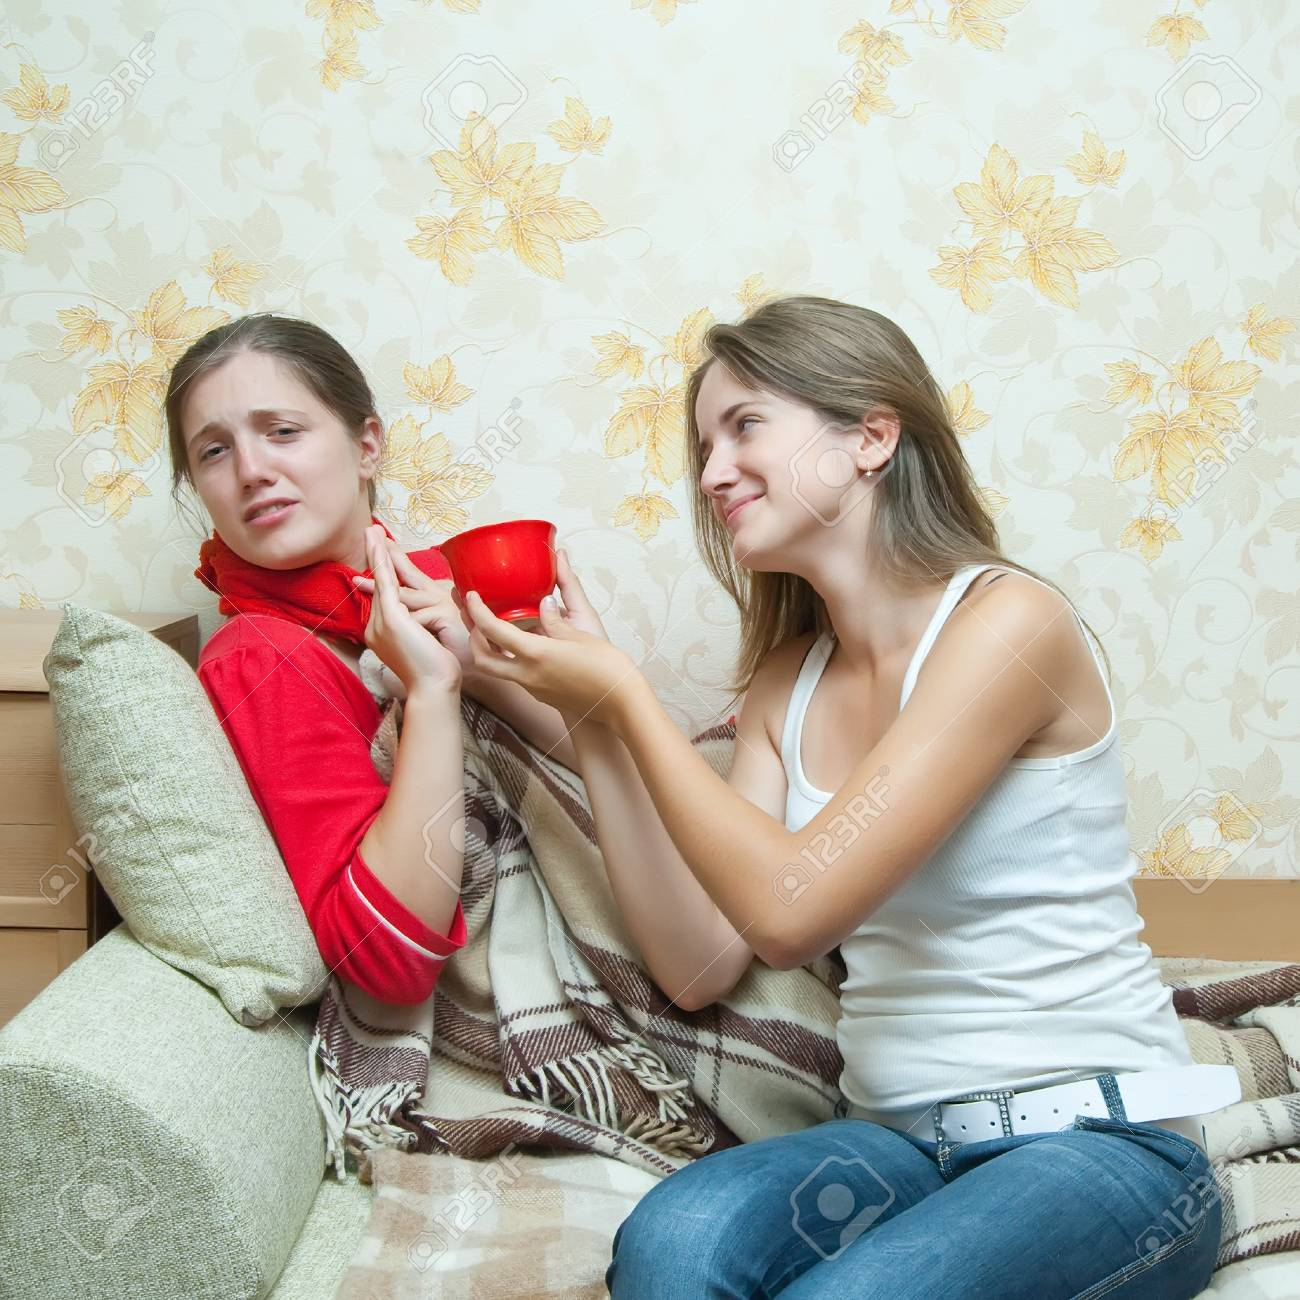 girl gives a cup to sick girl Stock Photo - 7375207